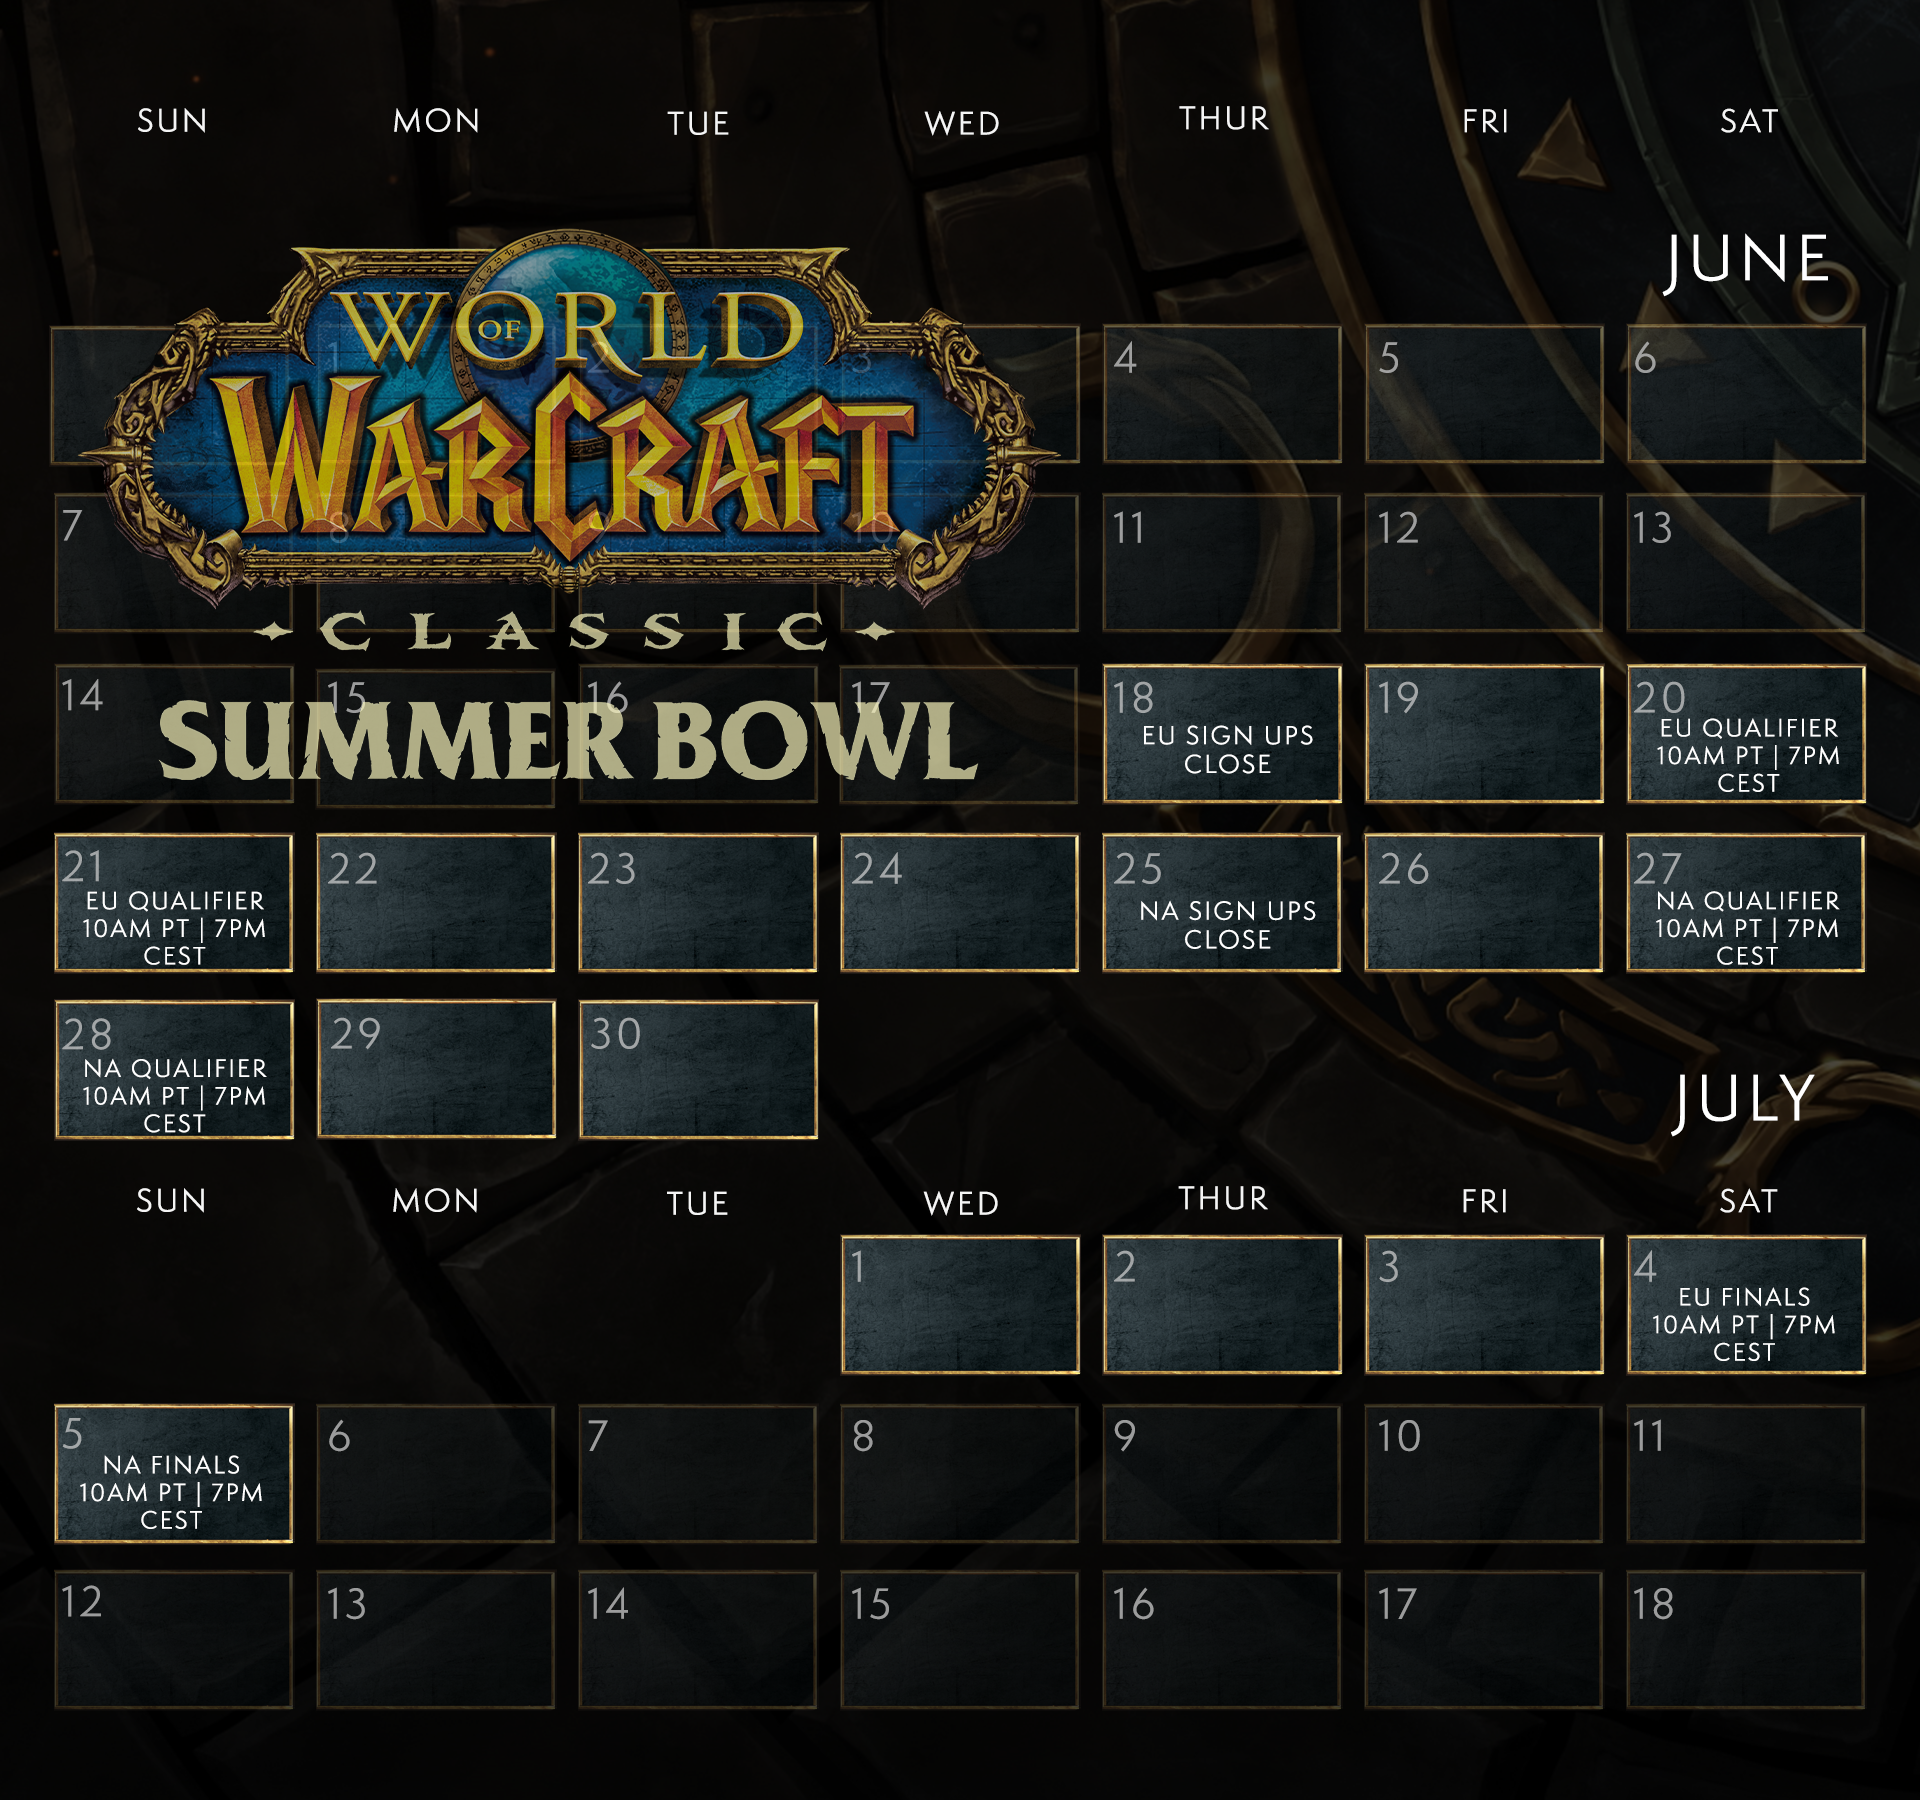 WoW Classic Summer Bowl Schedule